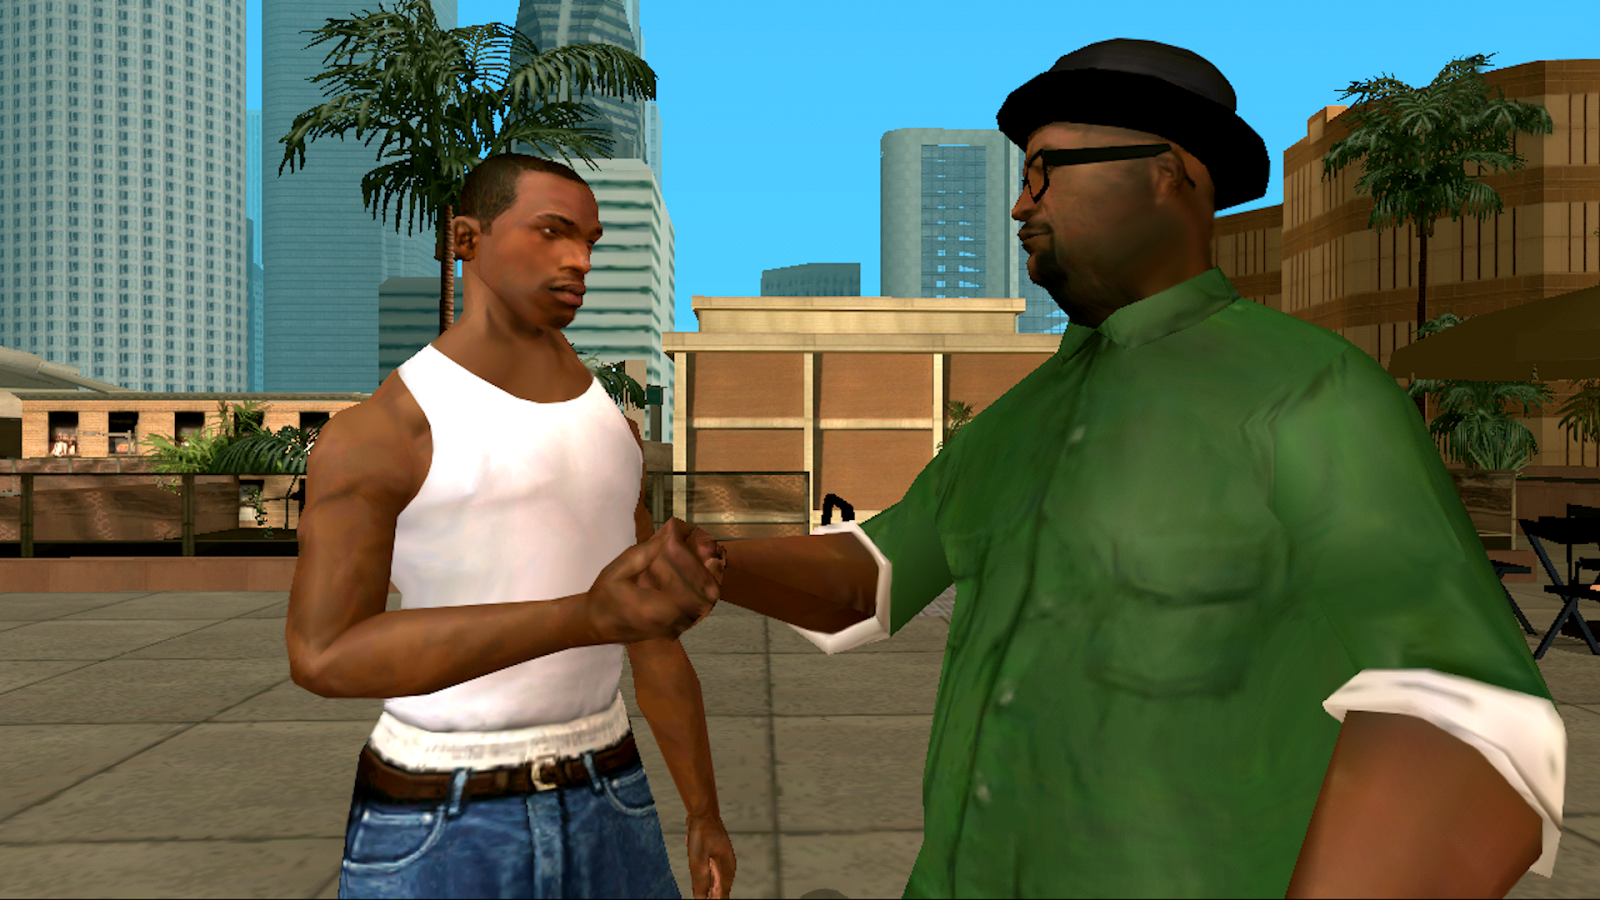 GTA San Andreas v1.0.3 [Mod Cheats] APK Arcade & Action Games Free Download